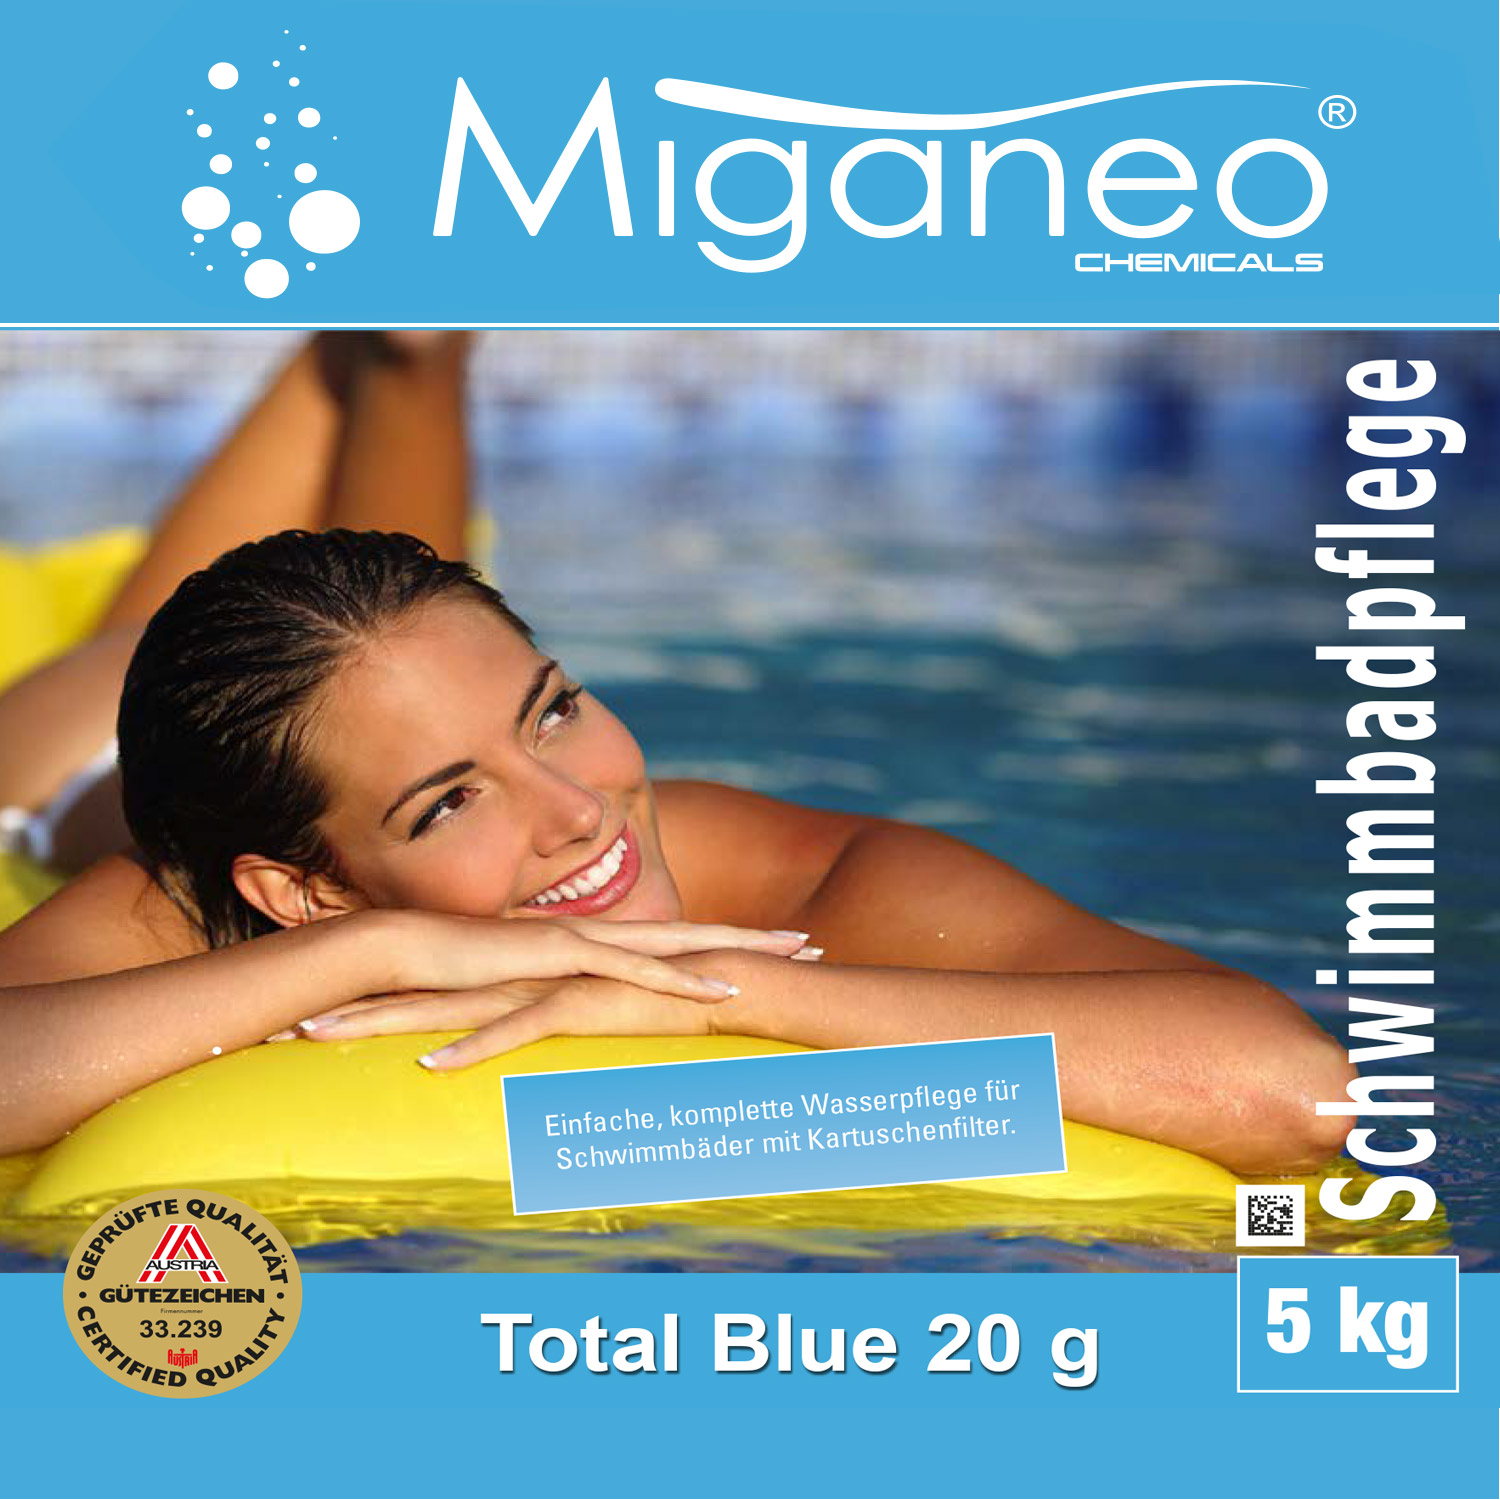 miganeo blue power tabs 5kg multitabs 5 in 1. Black Bedroom Furniture Sets. Home Design Ideas